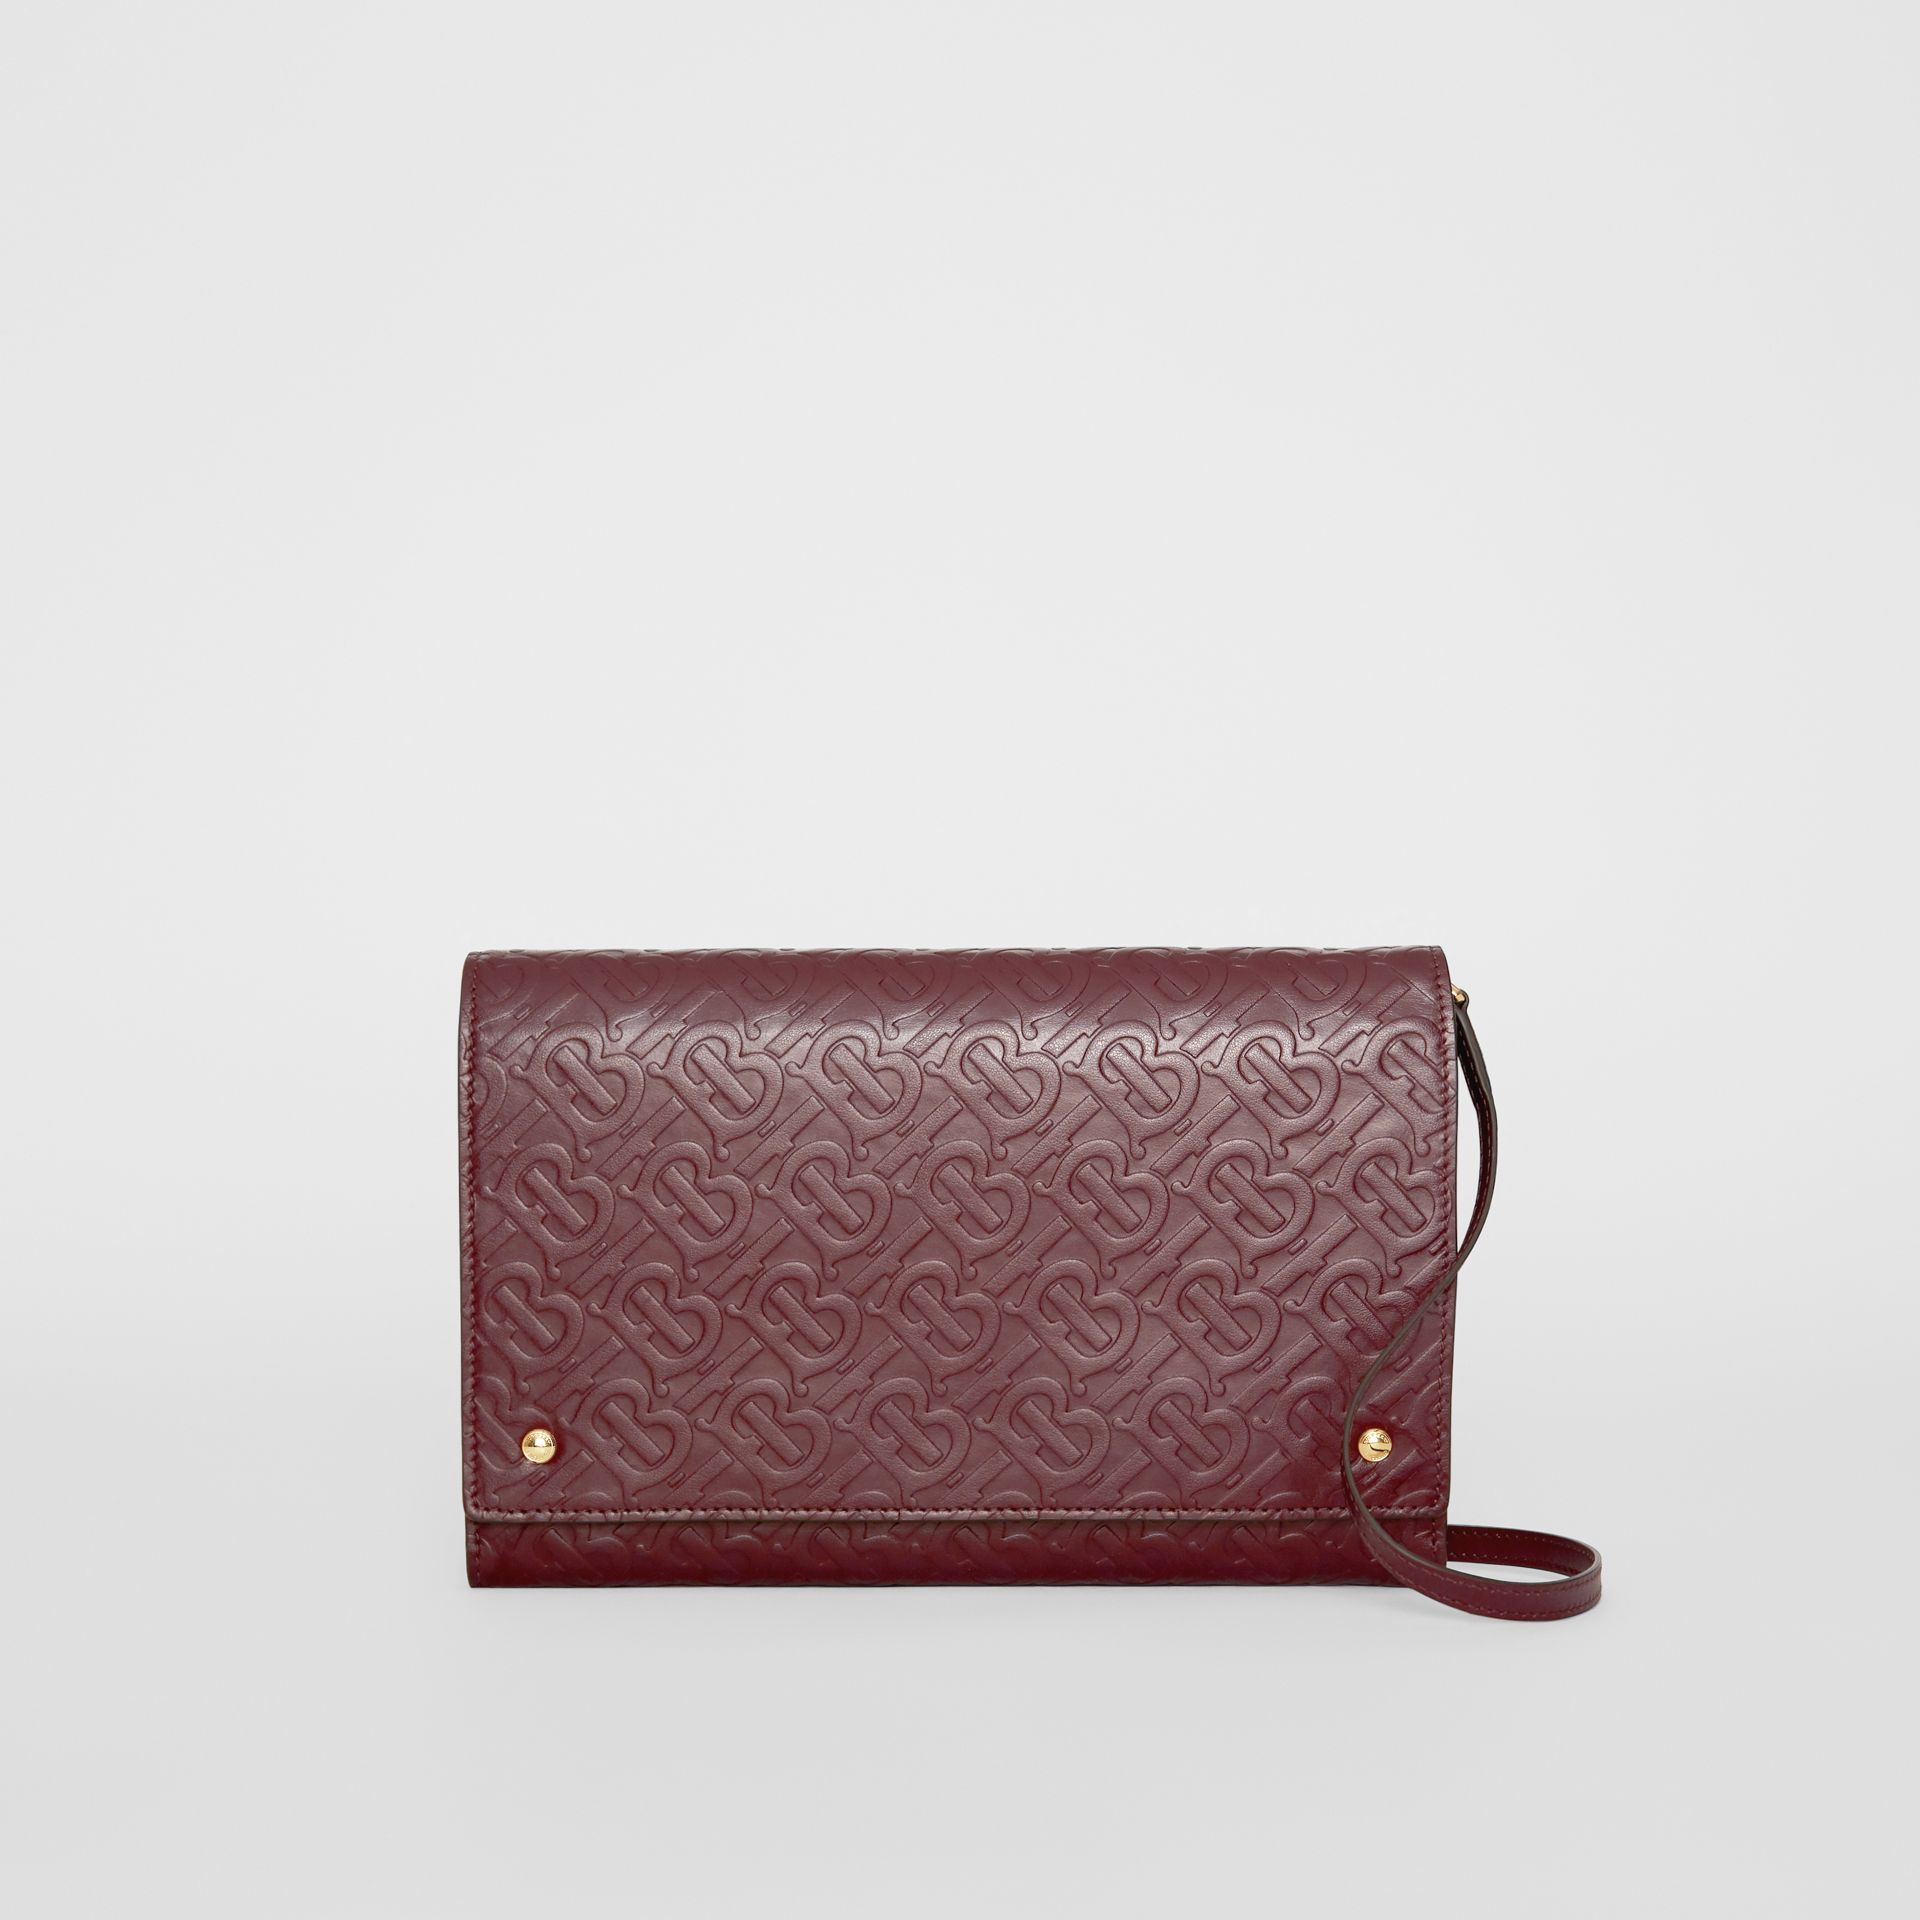 Monogram Leather Bag with Detachable Strap in Oxblood - Women | Burberry Canada - gallery image 0